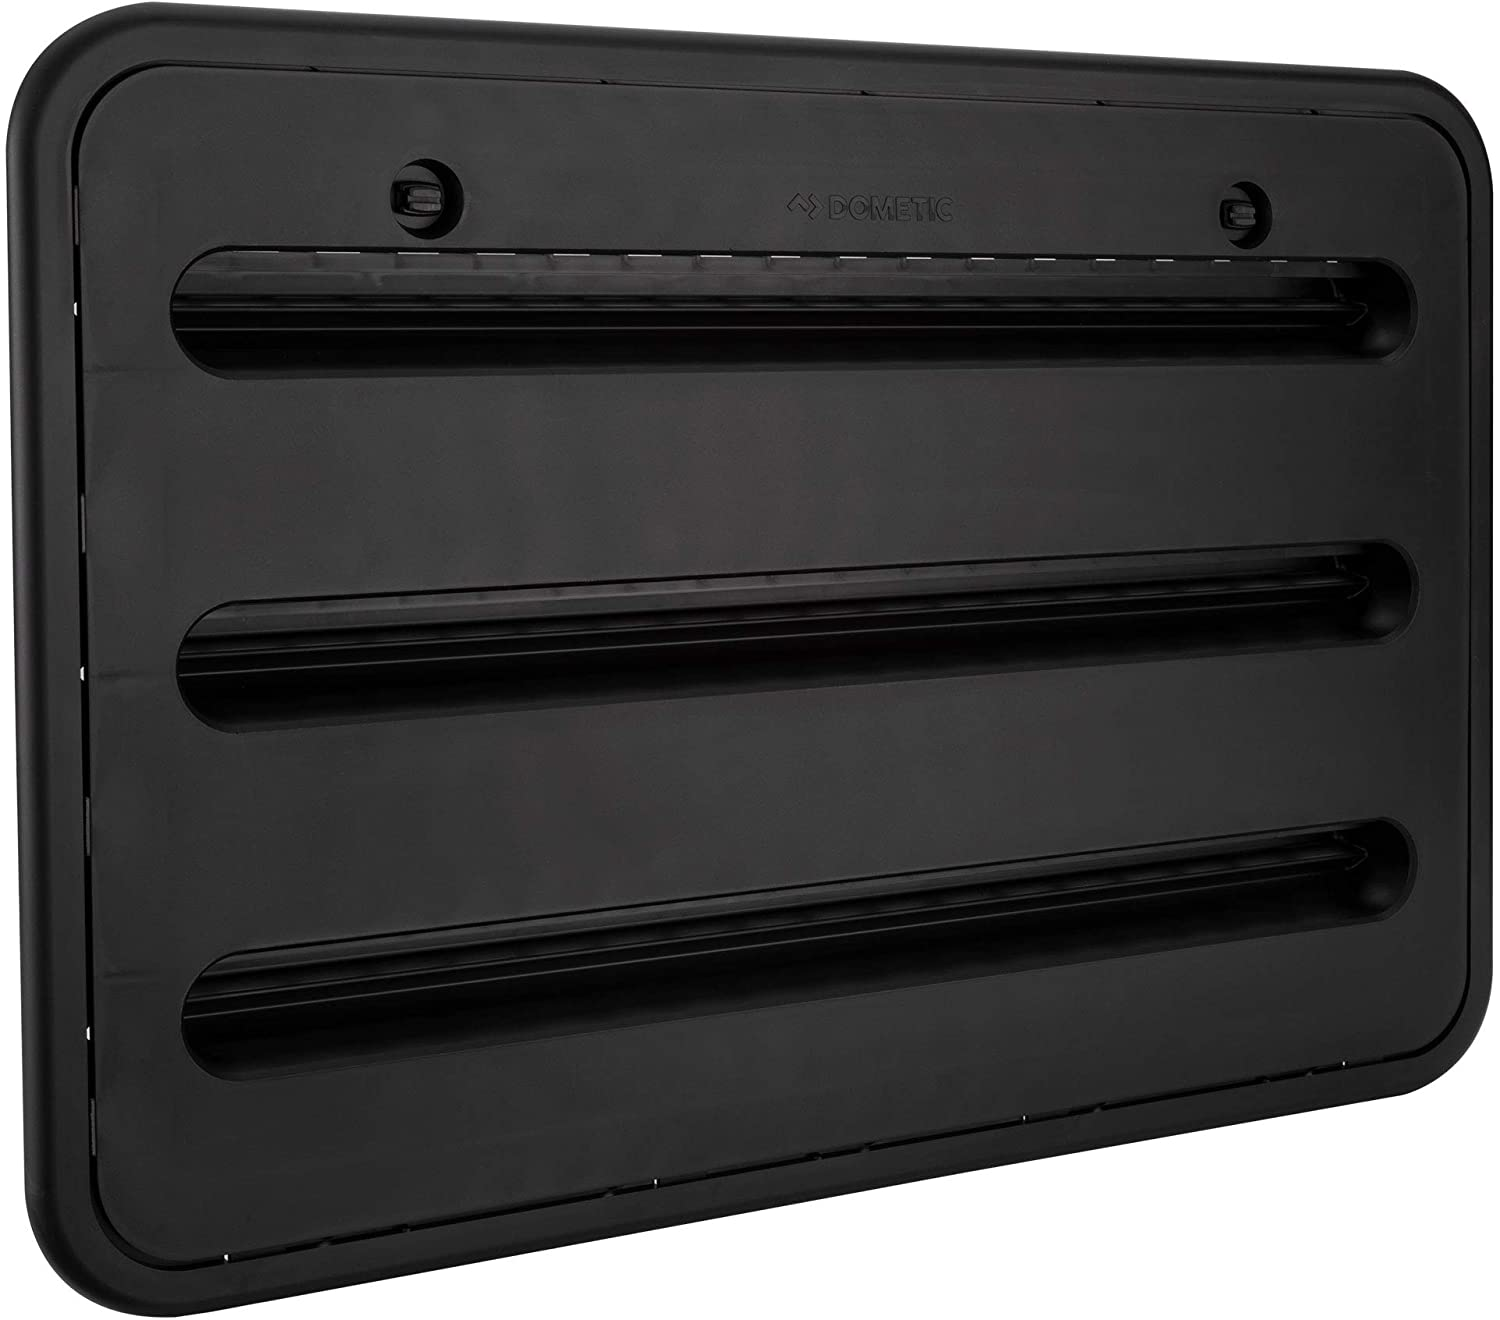 RV Refrigerator Side Vent Cover